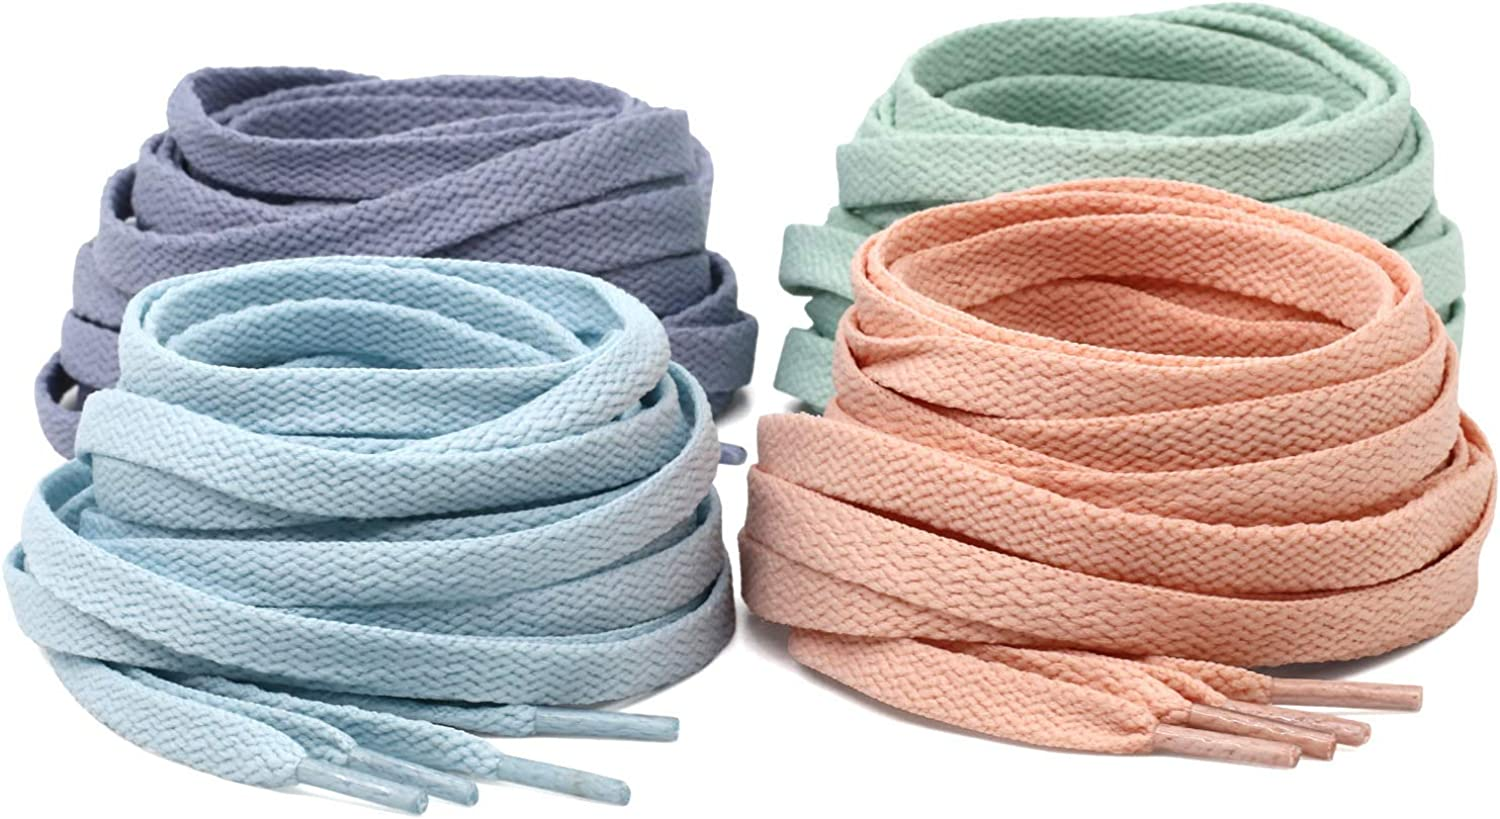 DELELE 2 Pair Super Quality 24 Colors Flat Shoe laces 5//16 Wide Shoelaces for Athletic Running Sneakers Shoes Boot Strings